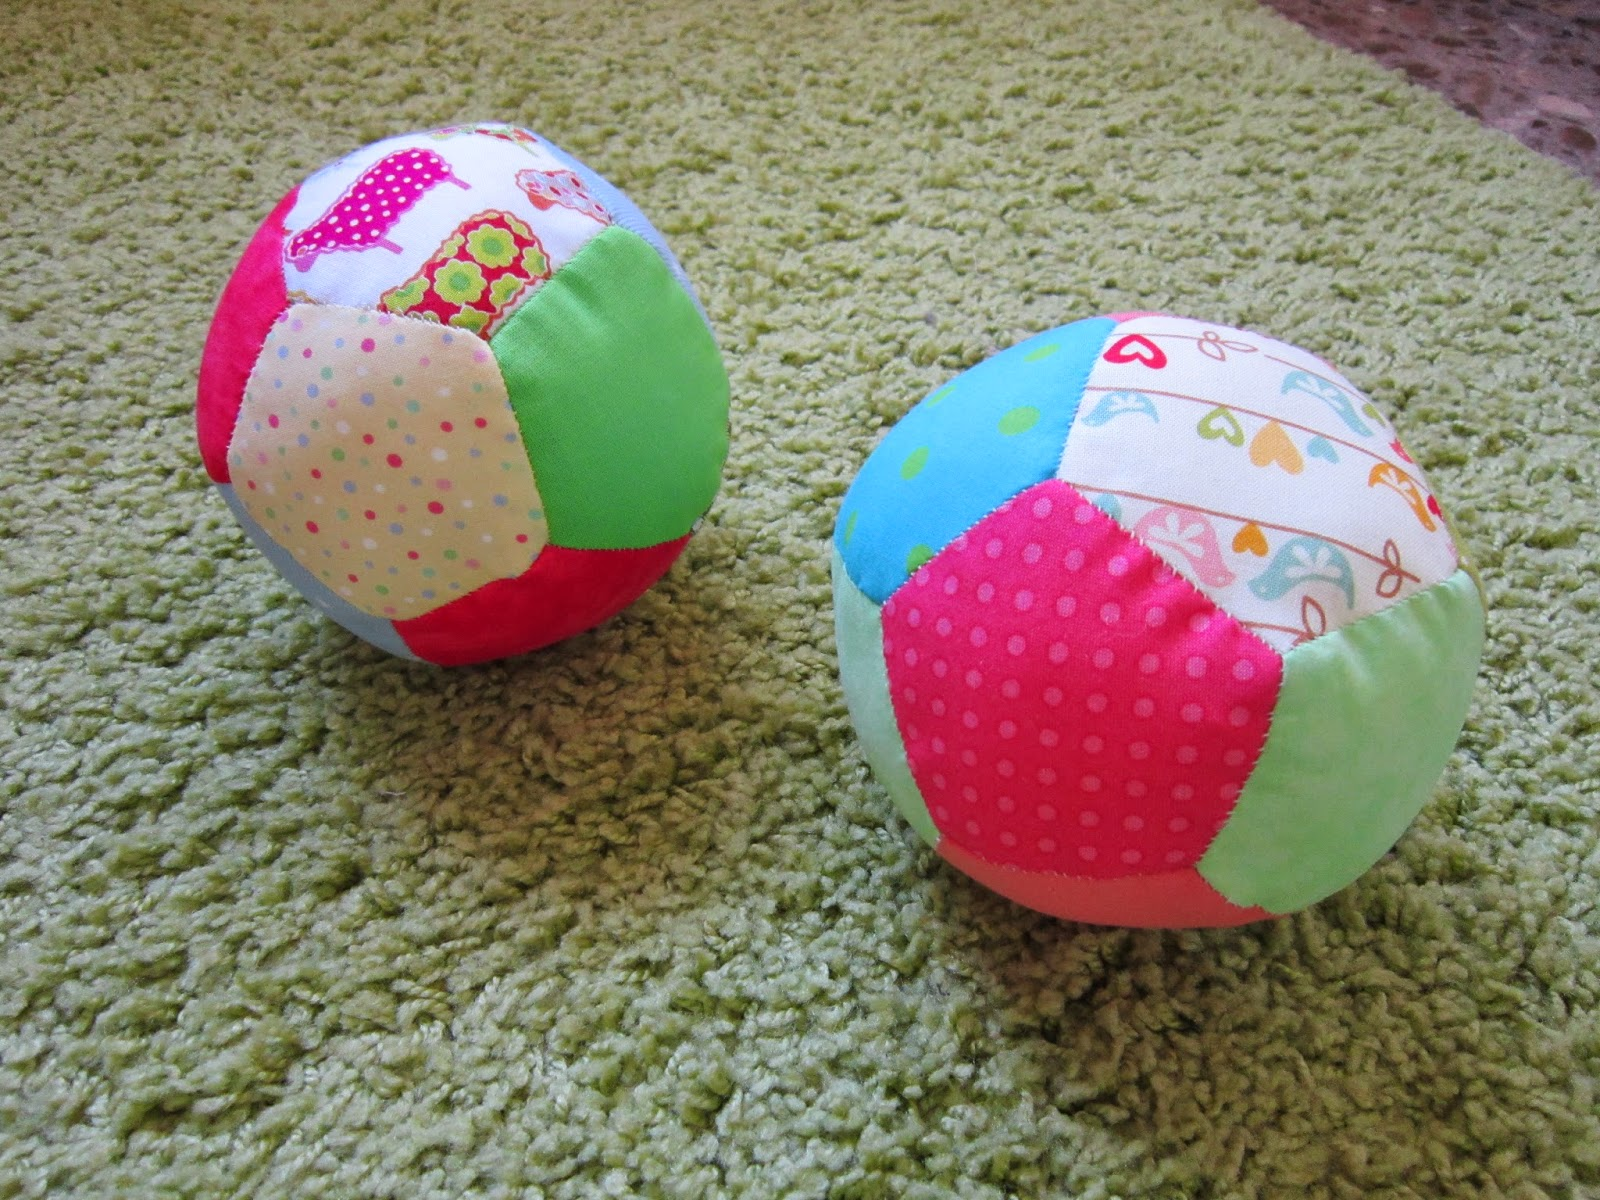 pelota, ball, patchwork, paper piecing, pentagono, pentagon, costura, couture, sewing